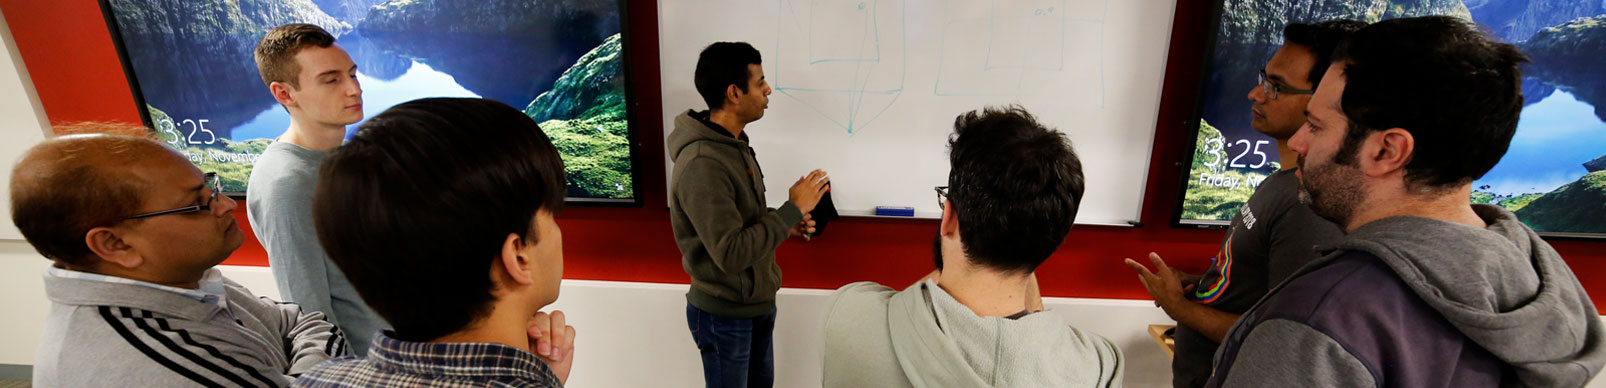 Male students gather around as a classmate develops an idea on a whiteboard